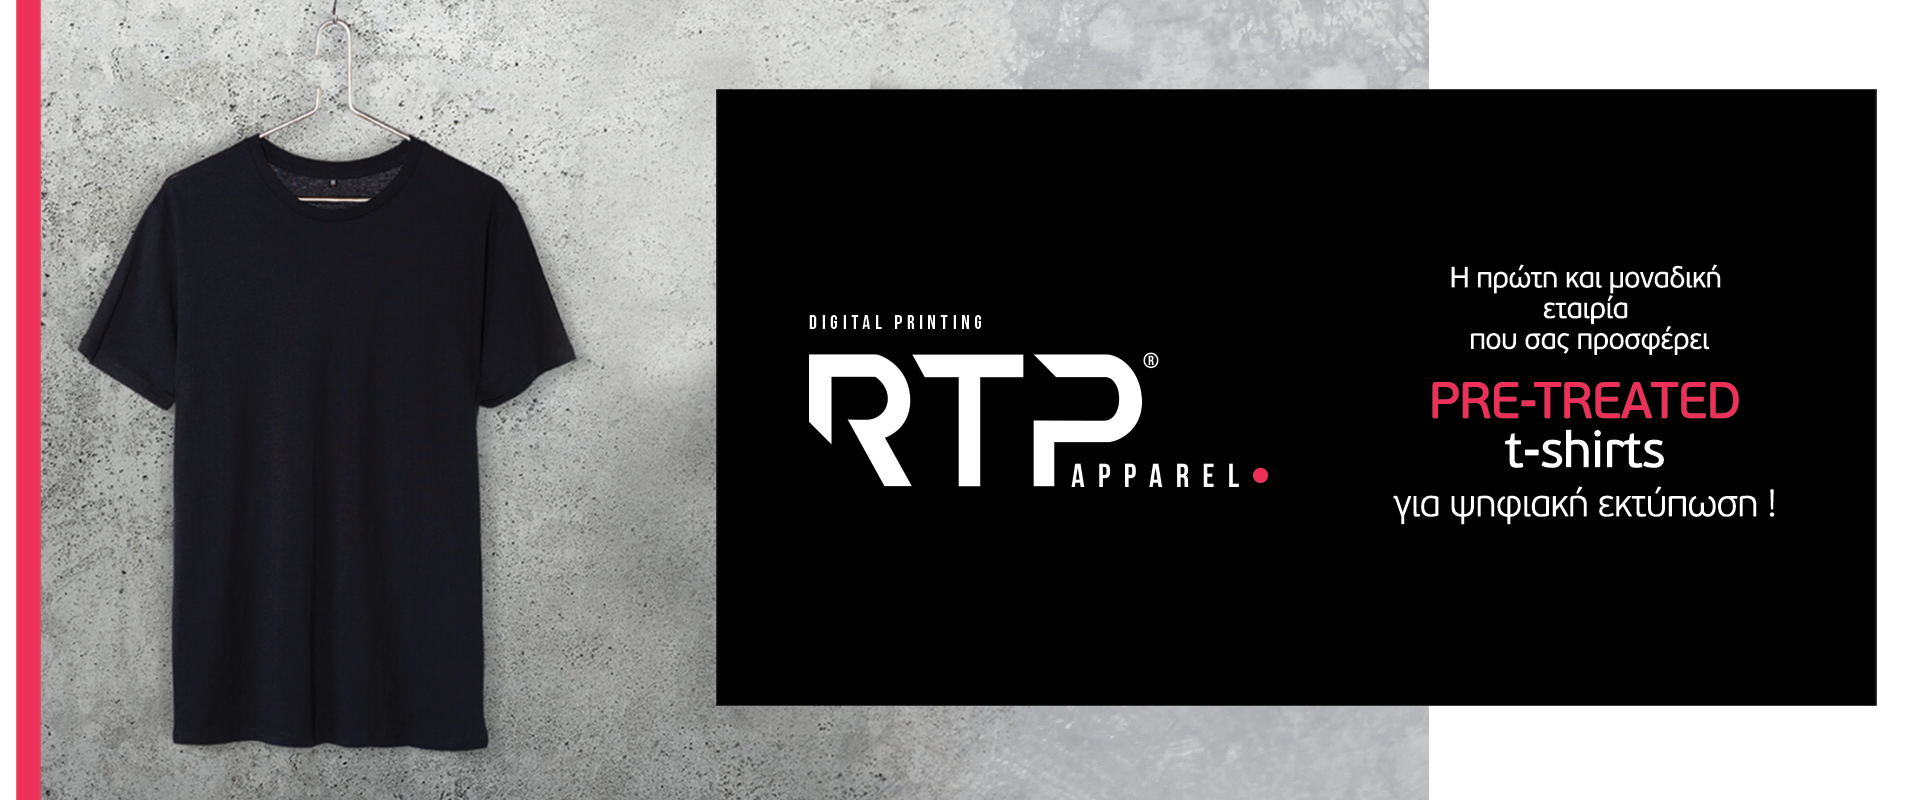 Slider_RTP_APPAREL_FromLivardas_Vol2